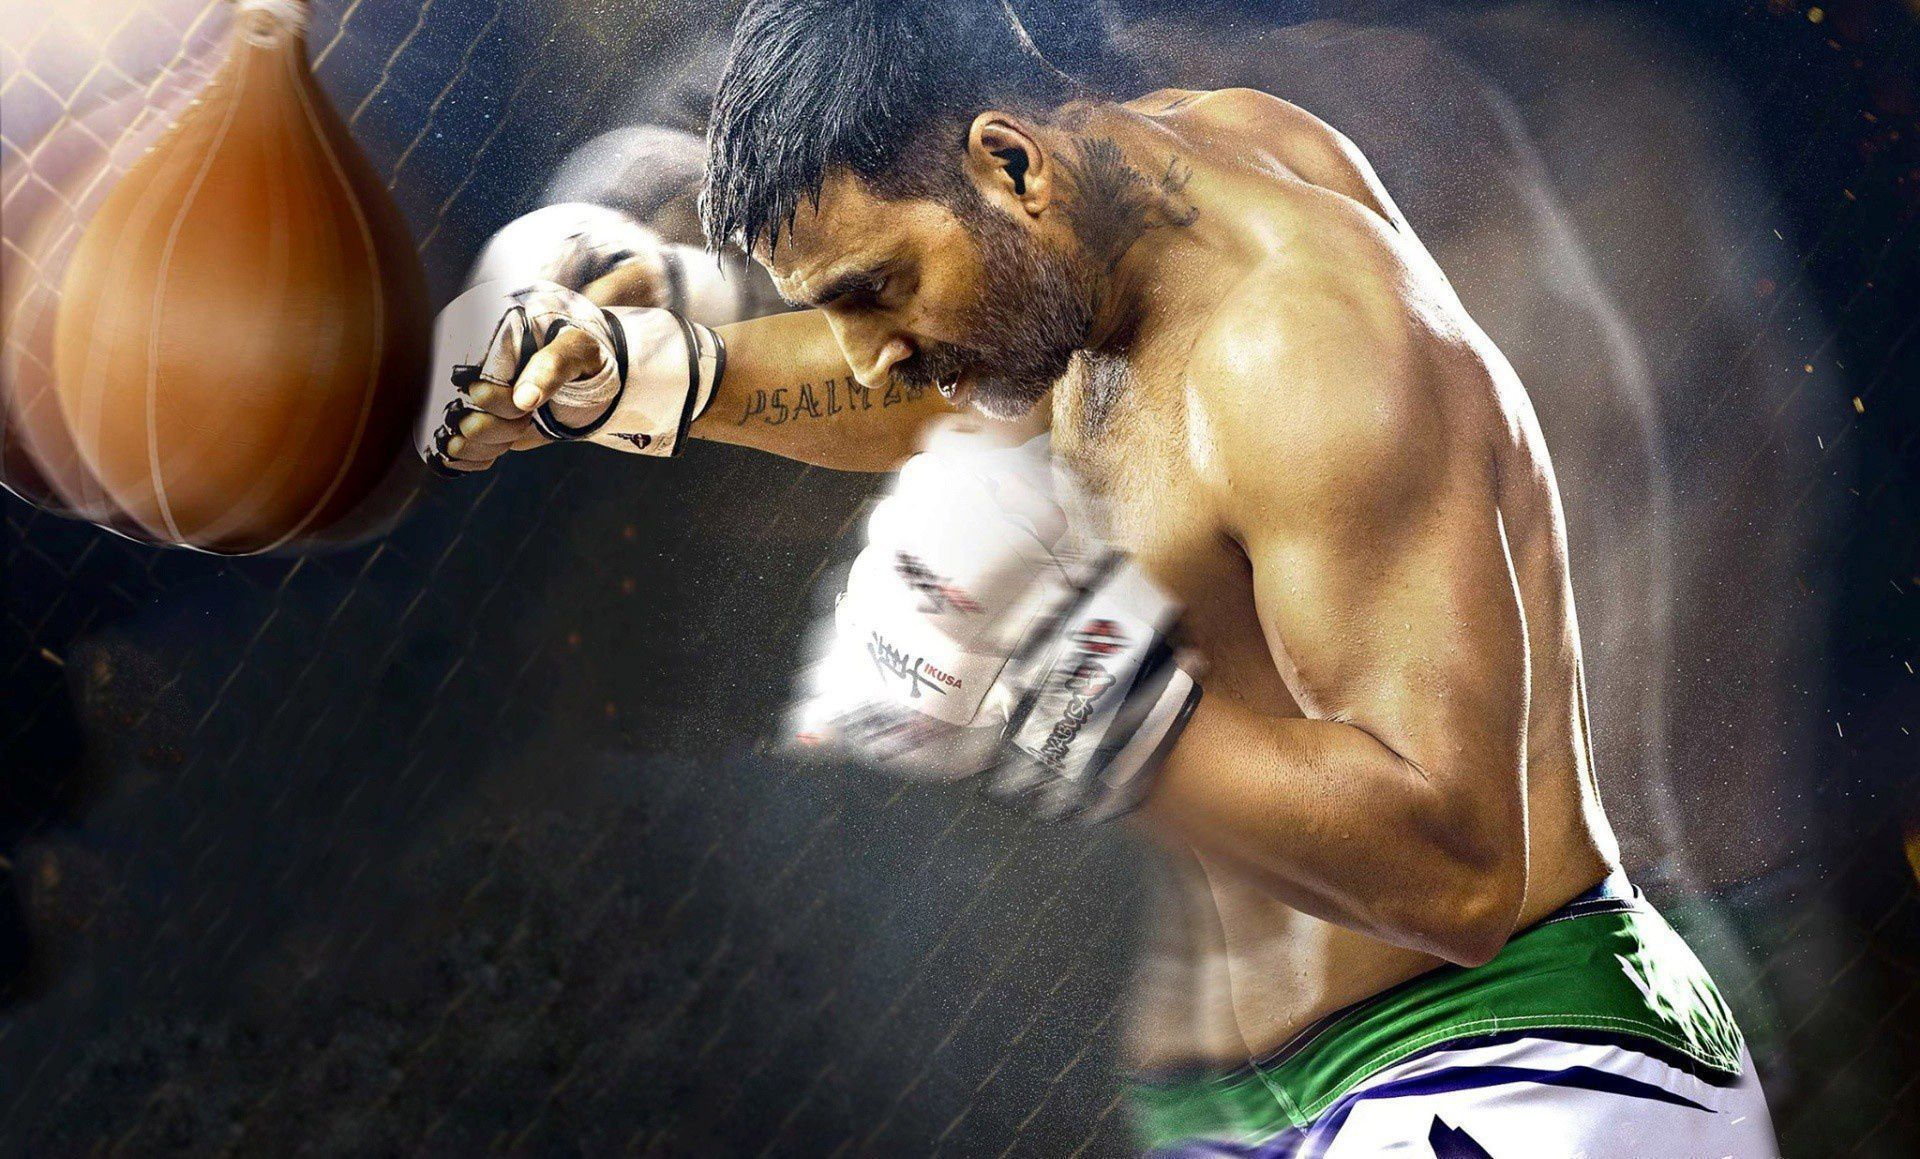 Boxing Wallpaper For Computer